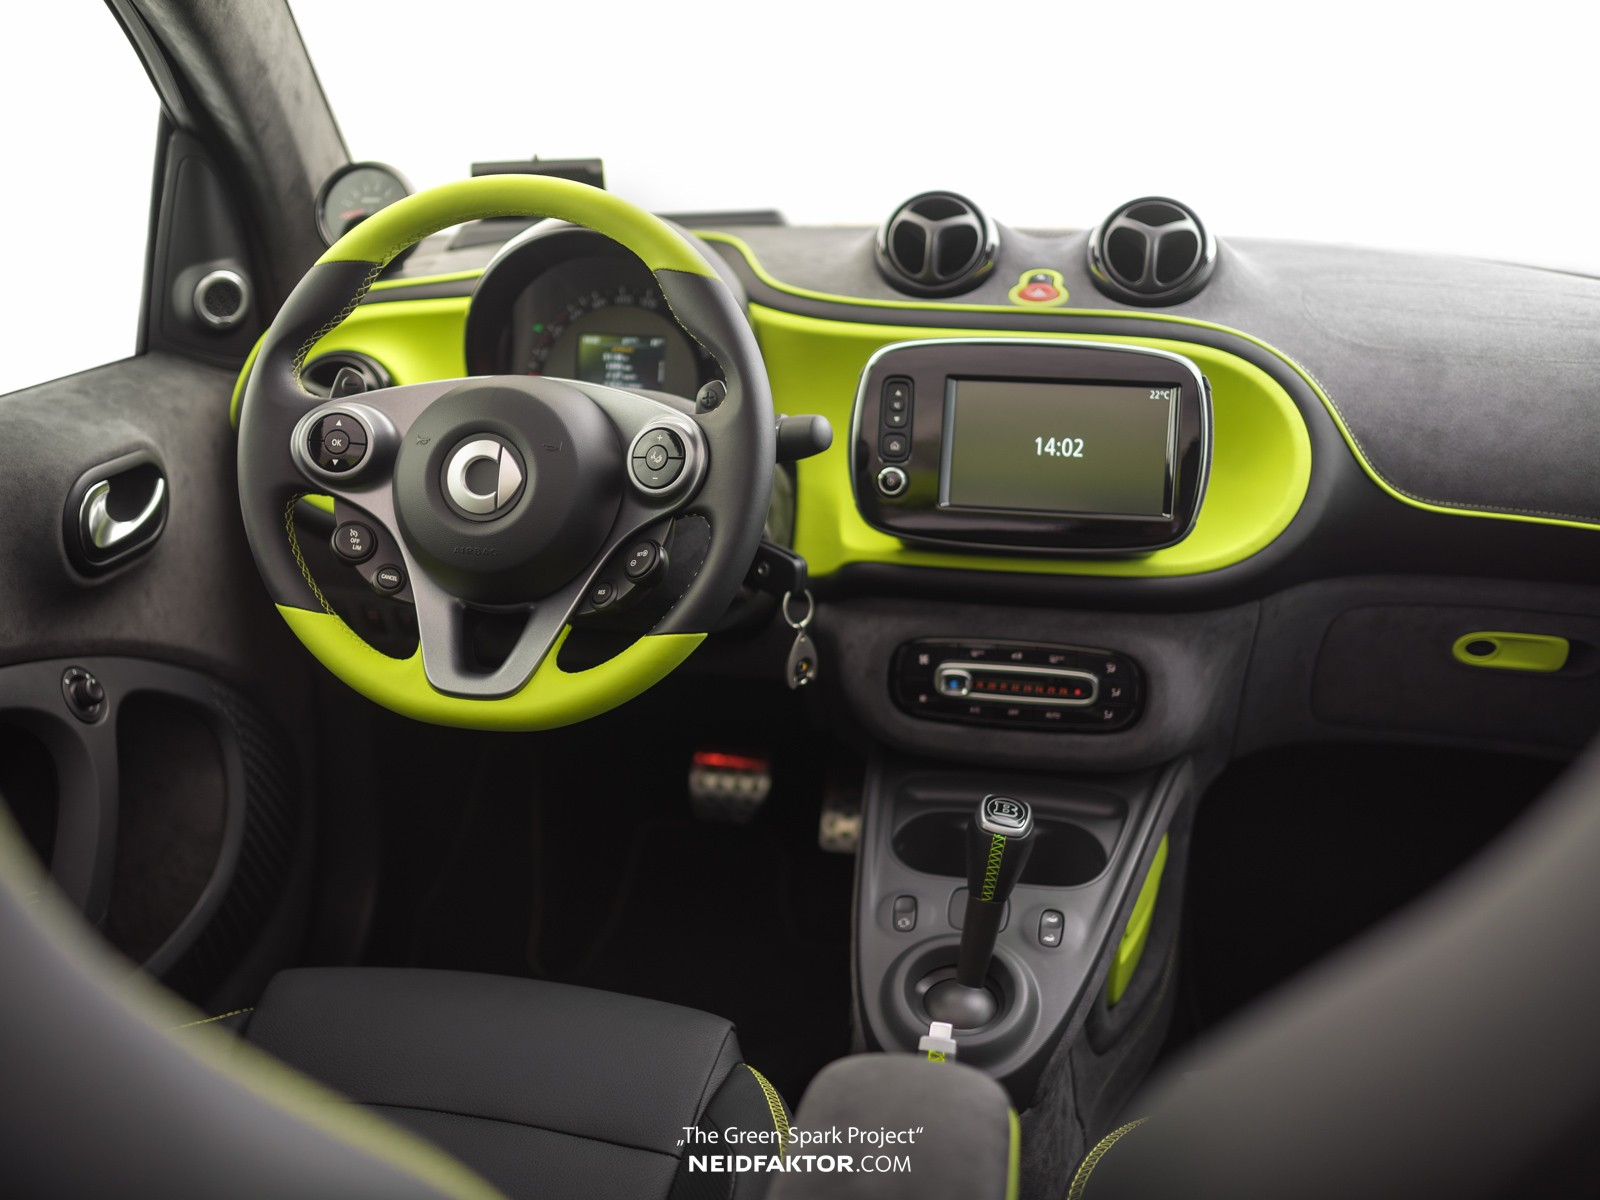 brabus smart fortwo interior by neidfaktor is better than brabus autoevolution. Black Bedroom Furniture Sets. Home Design Ideas